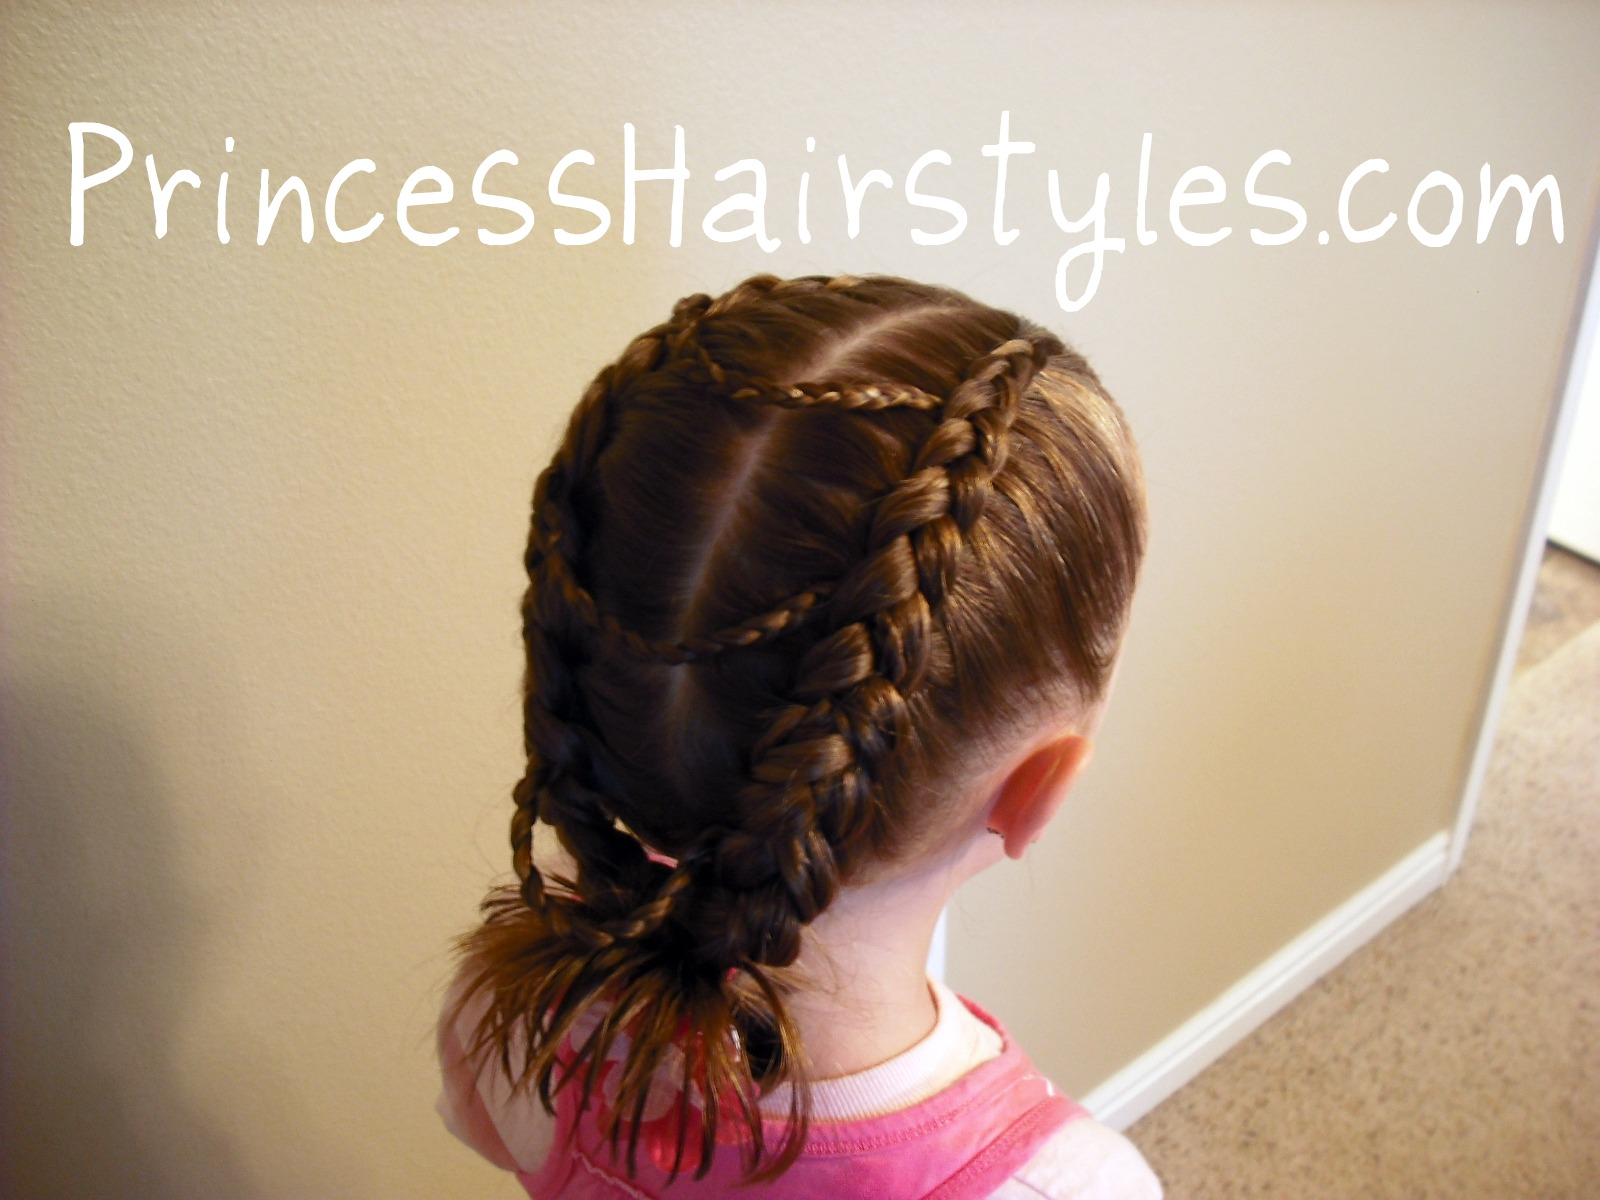 halloween hairstyles   hairstyles for girls - princess hairstyles